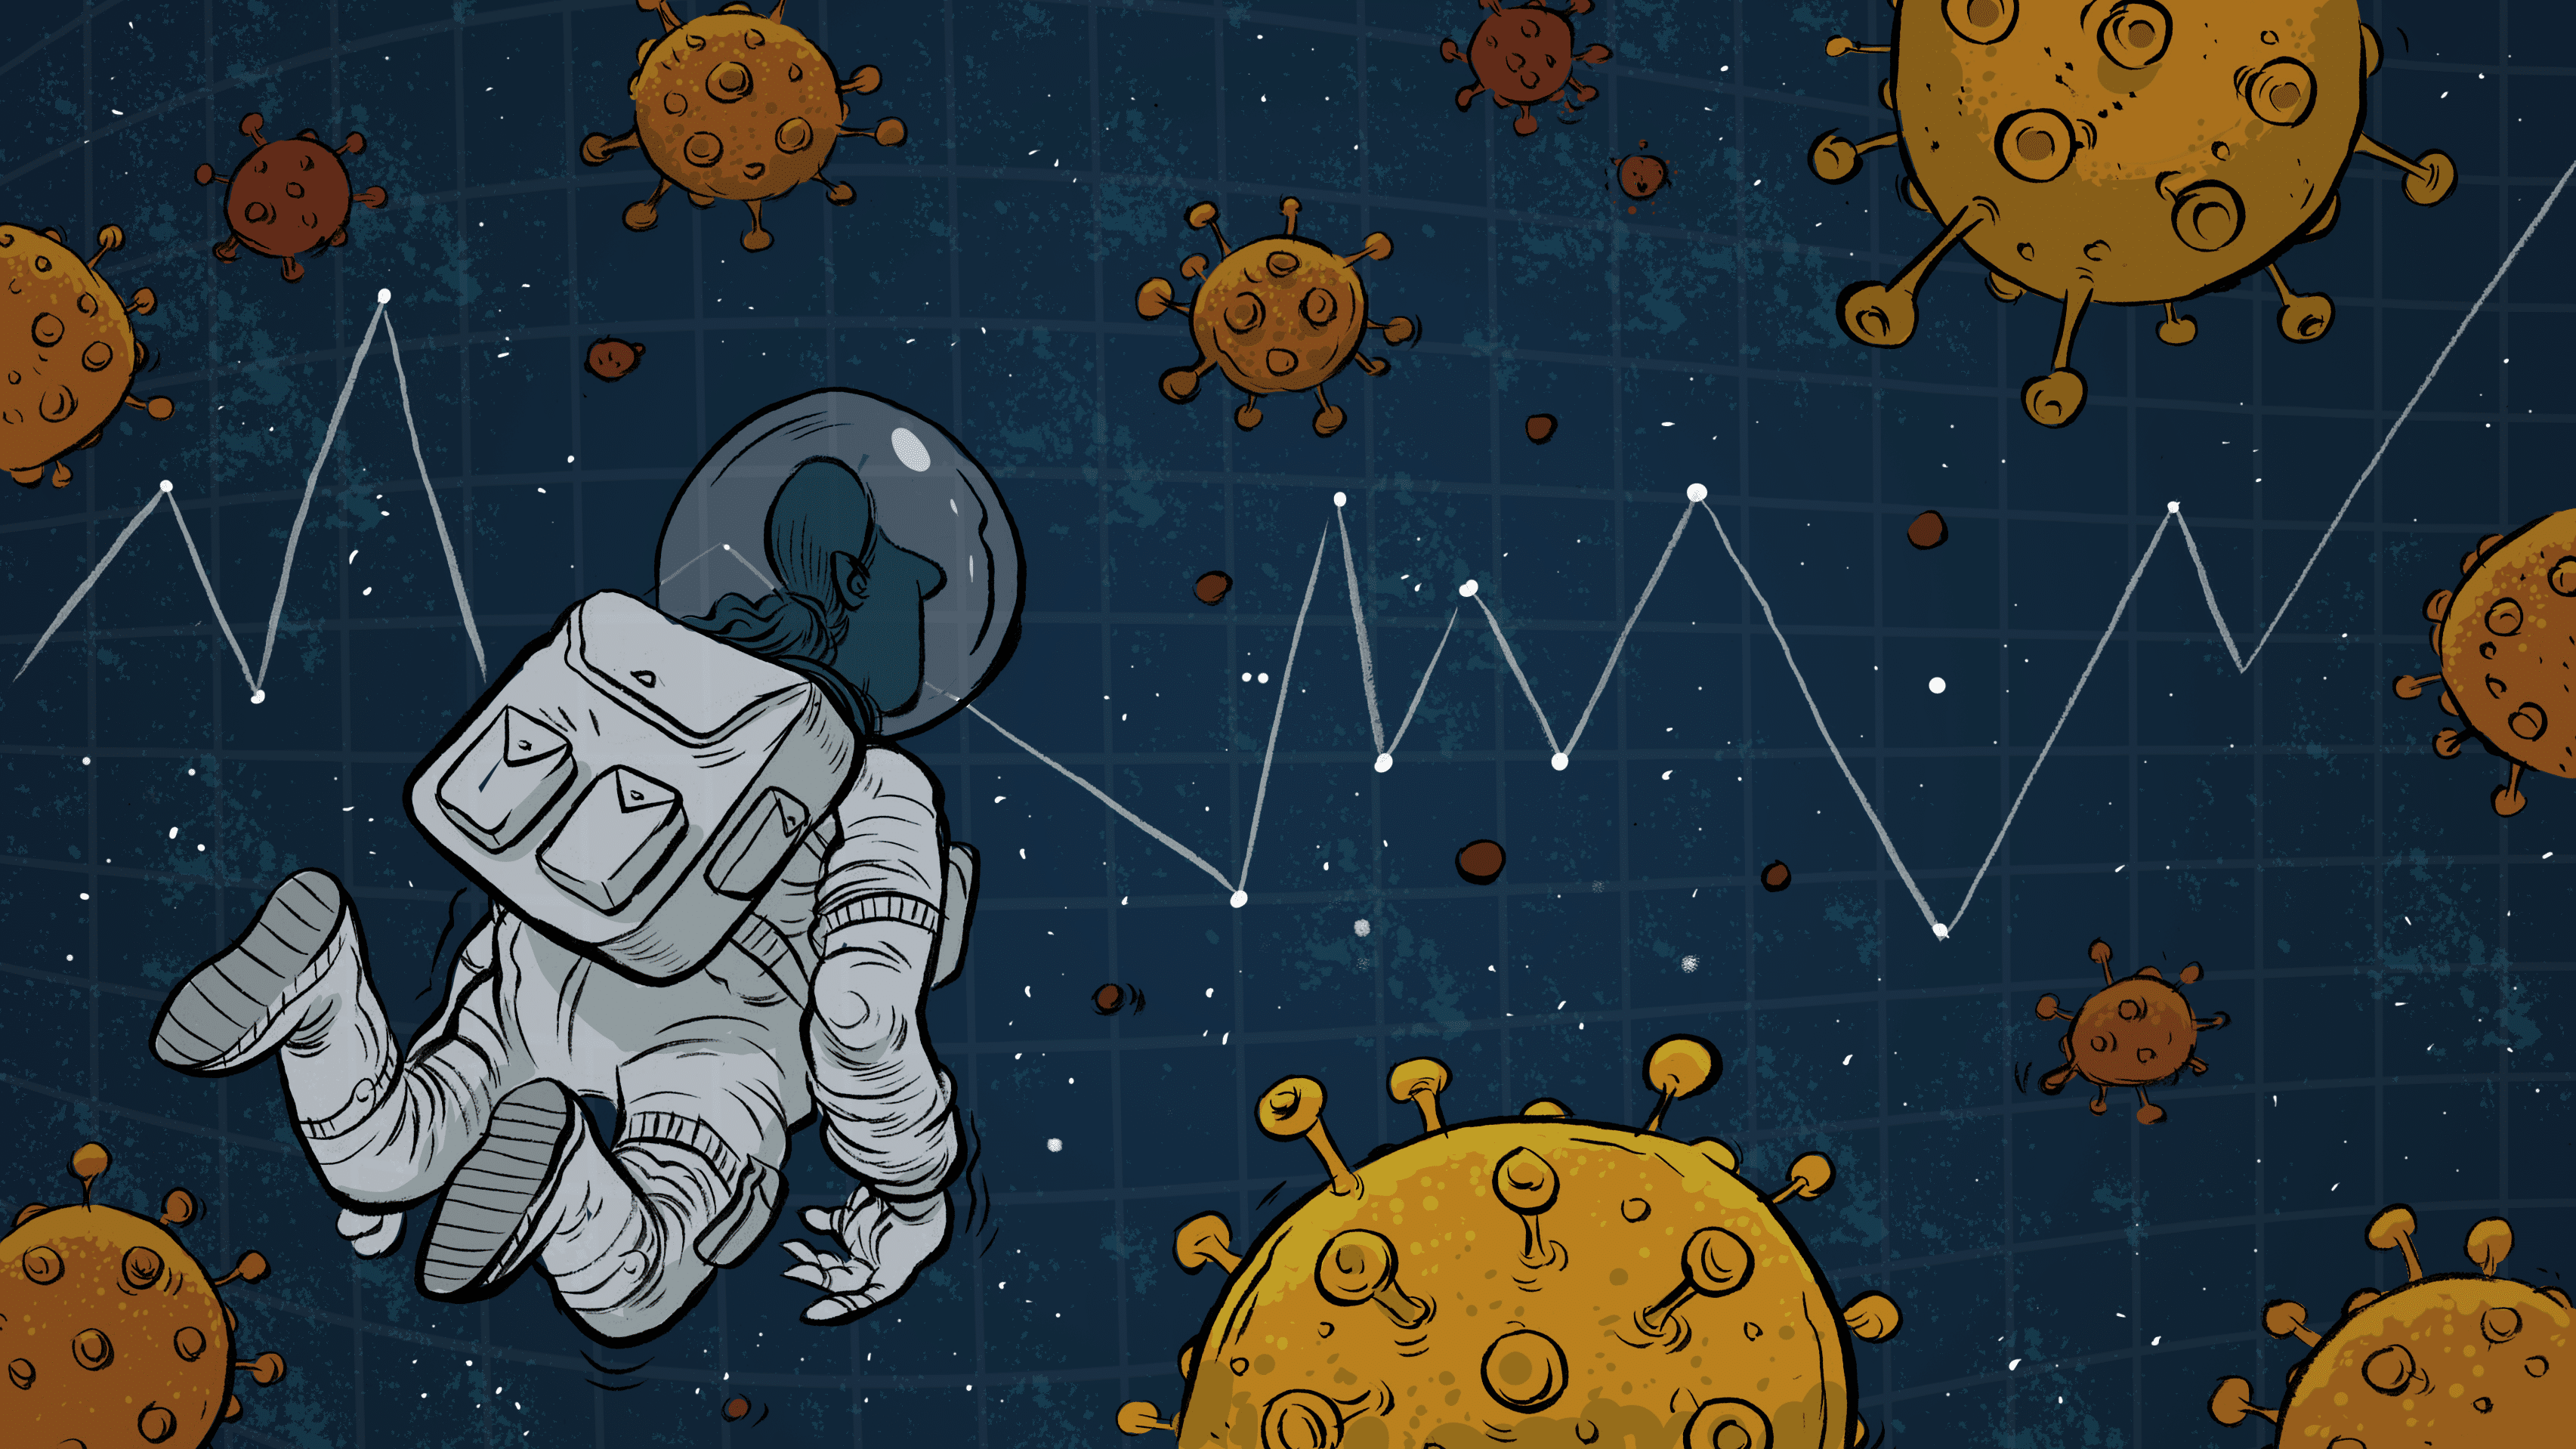 illustration of astronaut exploring through covid-19